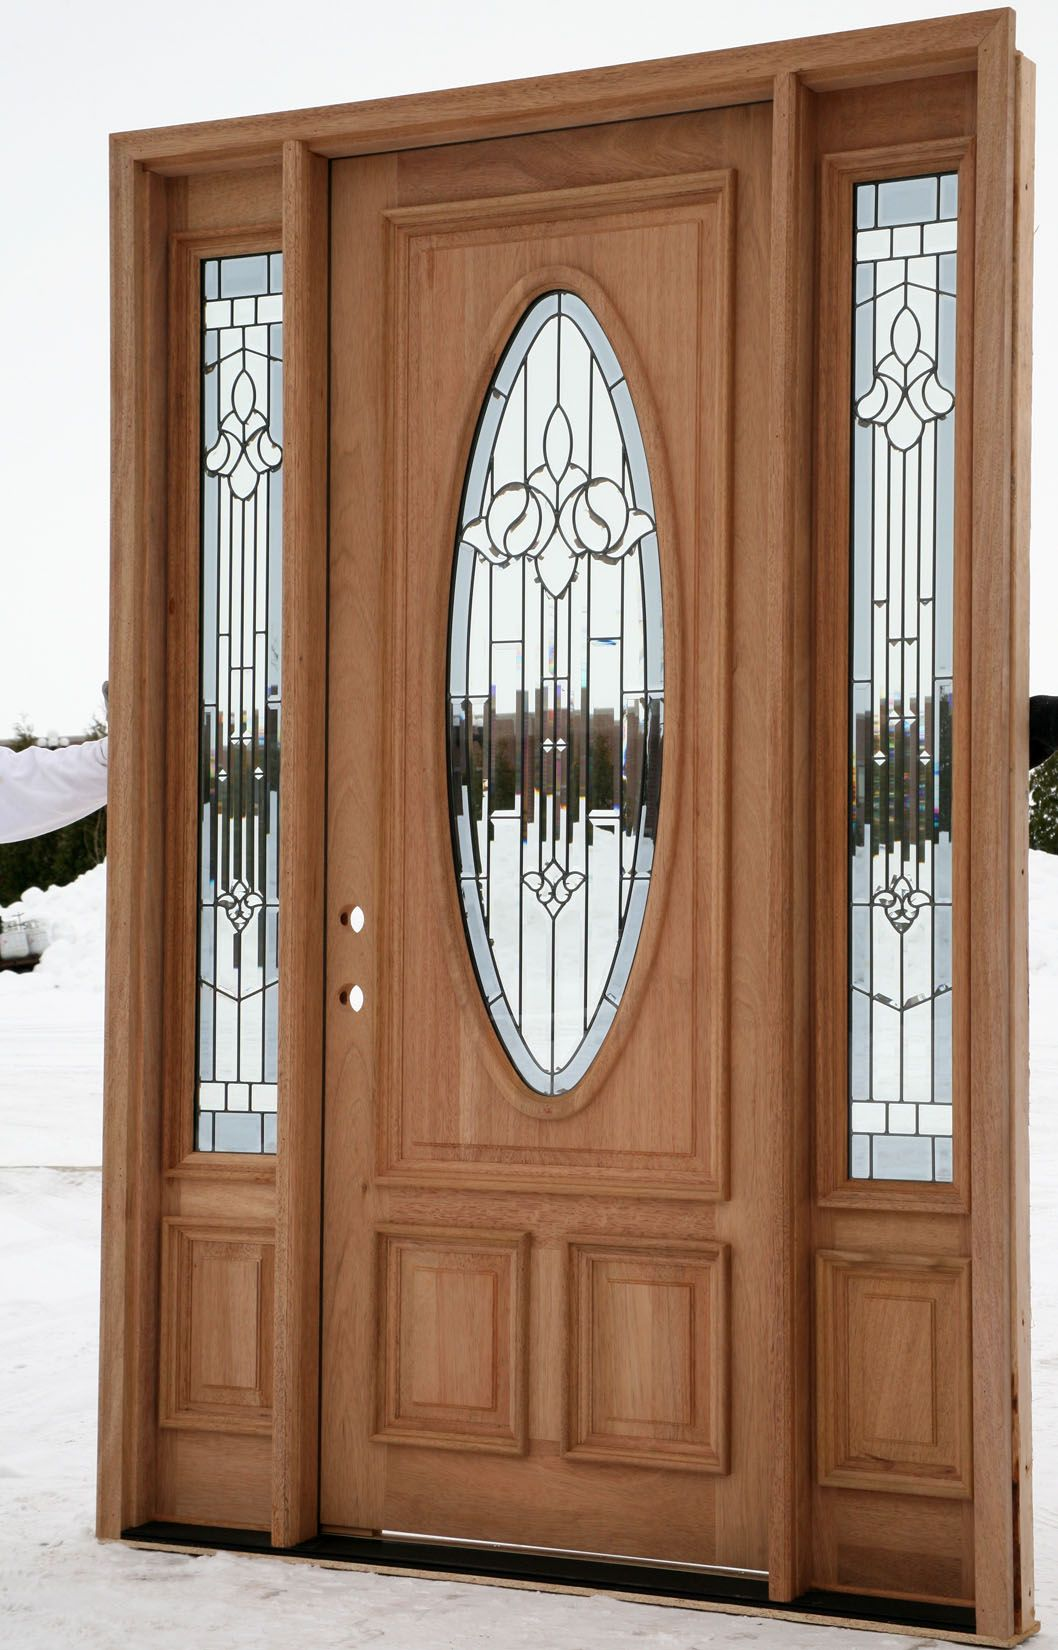 exterior entry doors with sidelights - Entrance Doors Designs